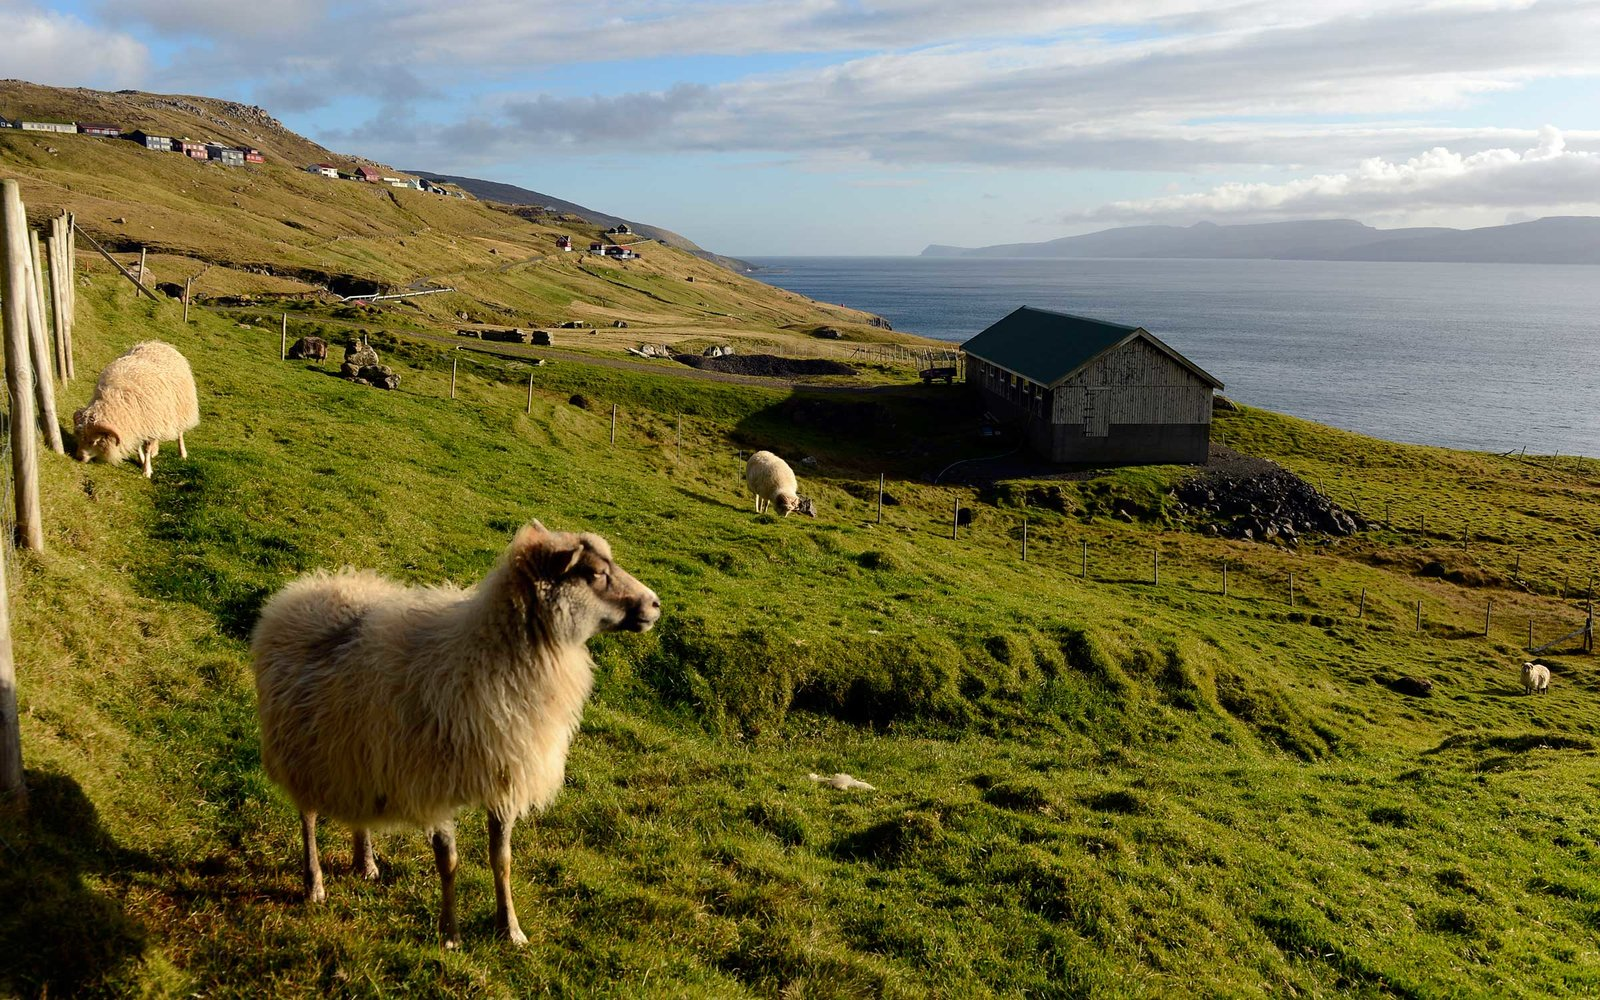 Forget Google Street View, meet this tiny island's sheep view